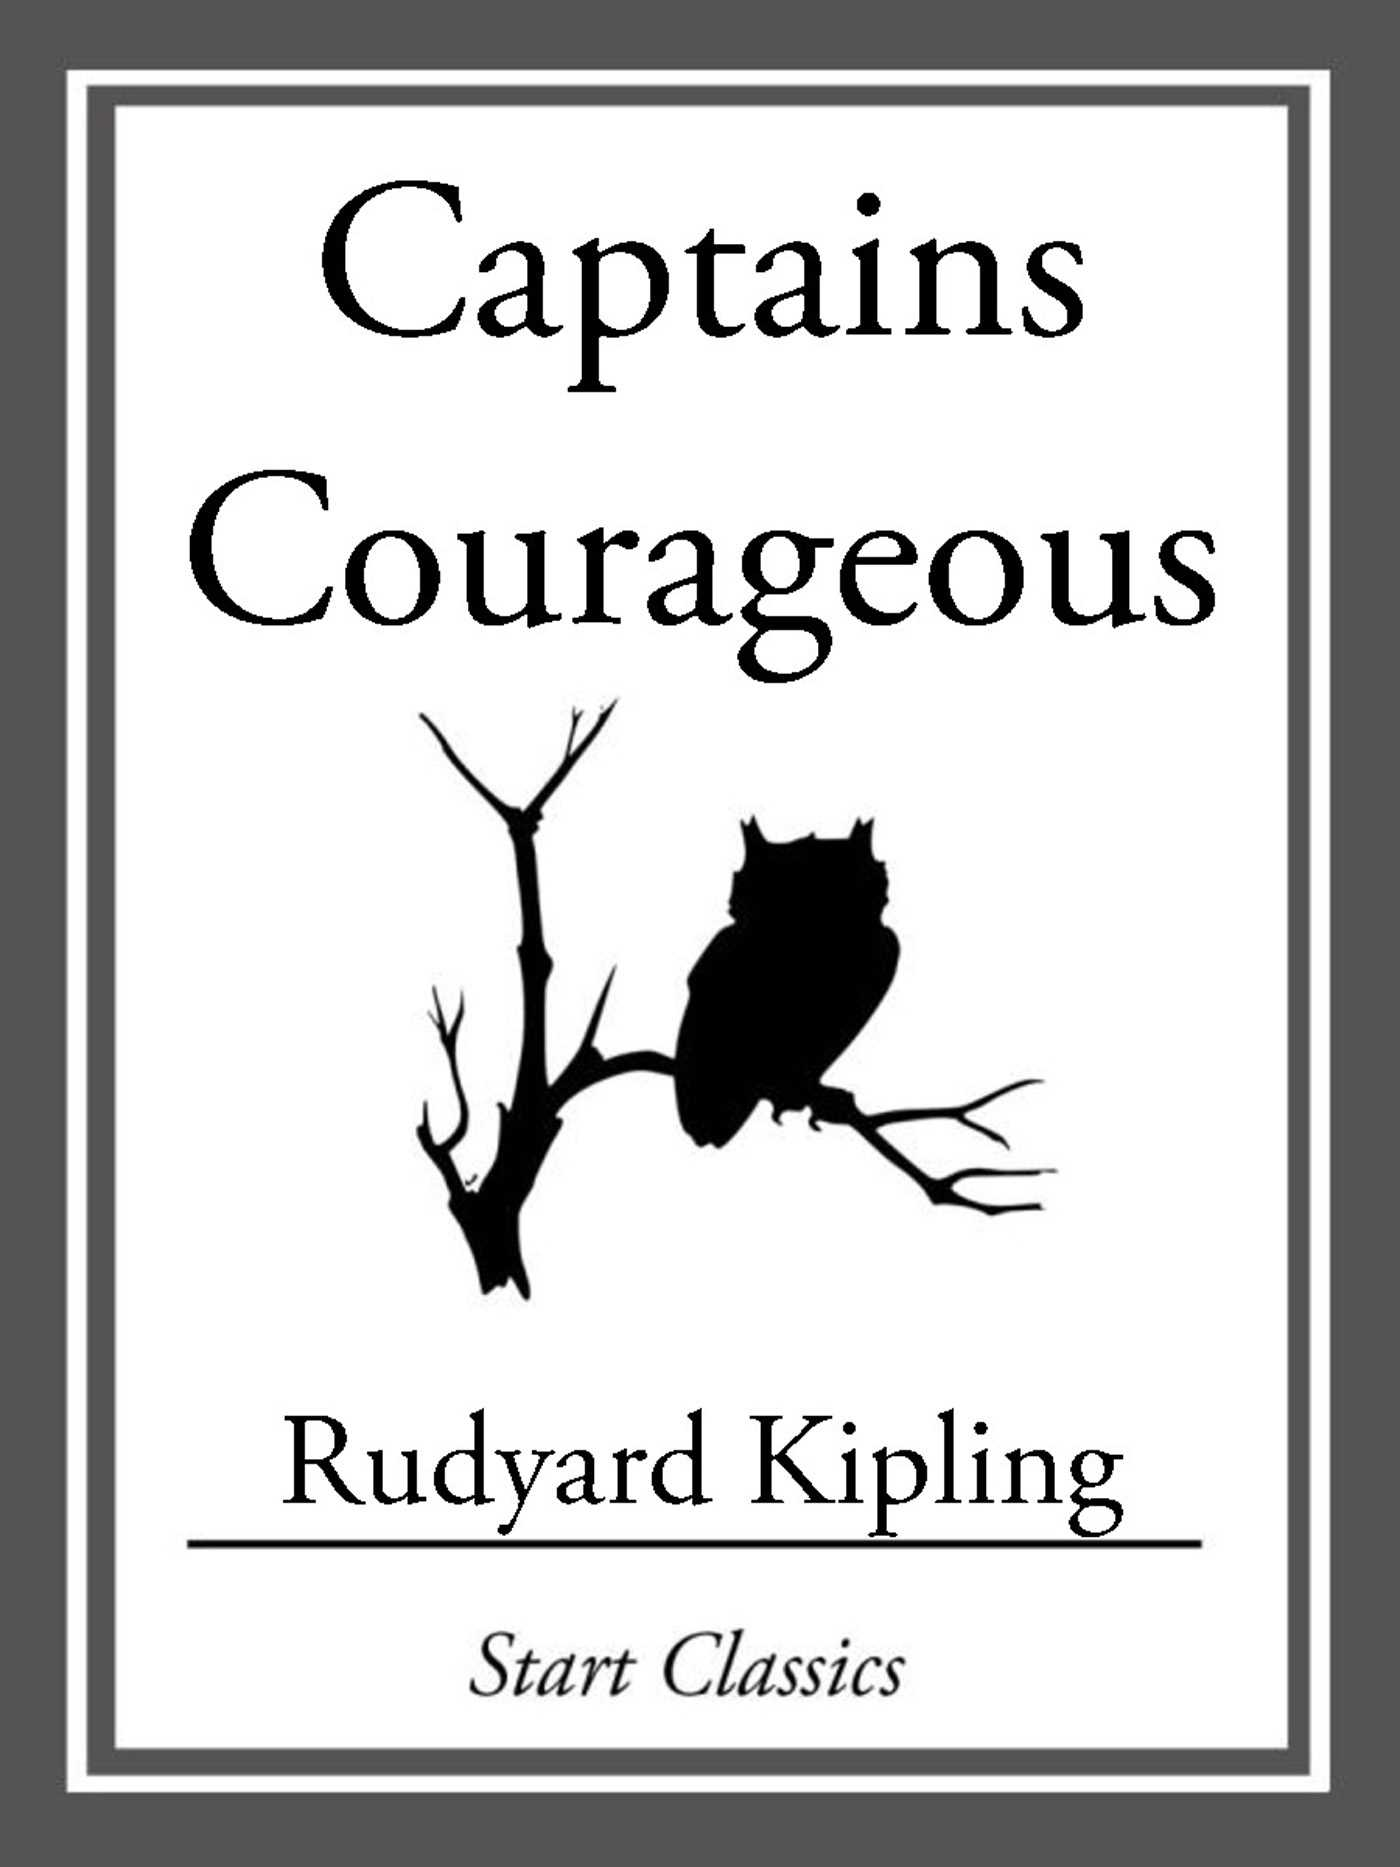 Captains Courageous by Rudyard Kipling     Reviews  Discussion     Amazon com